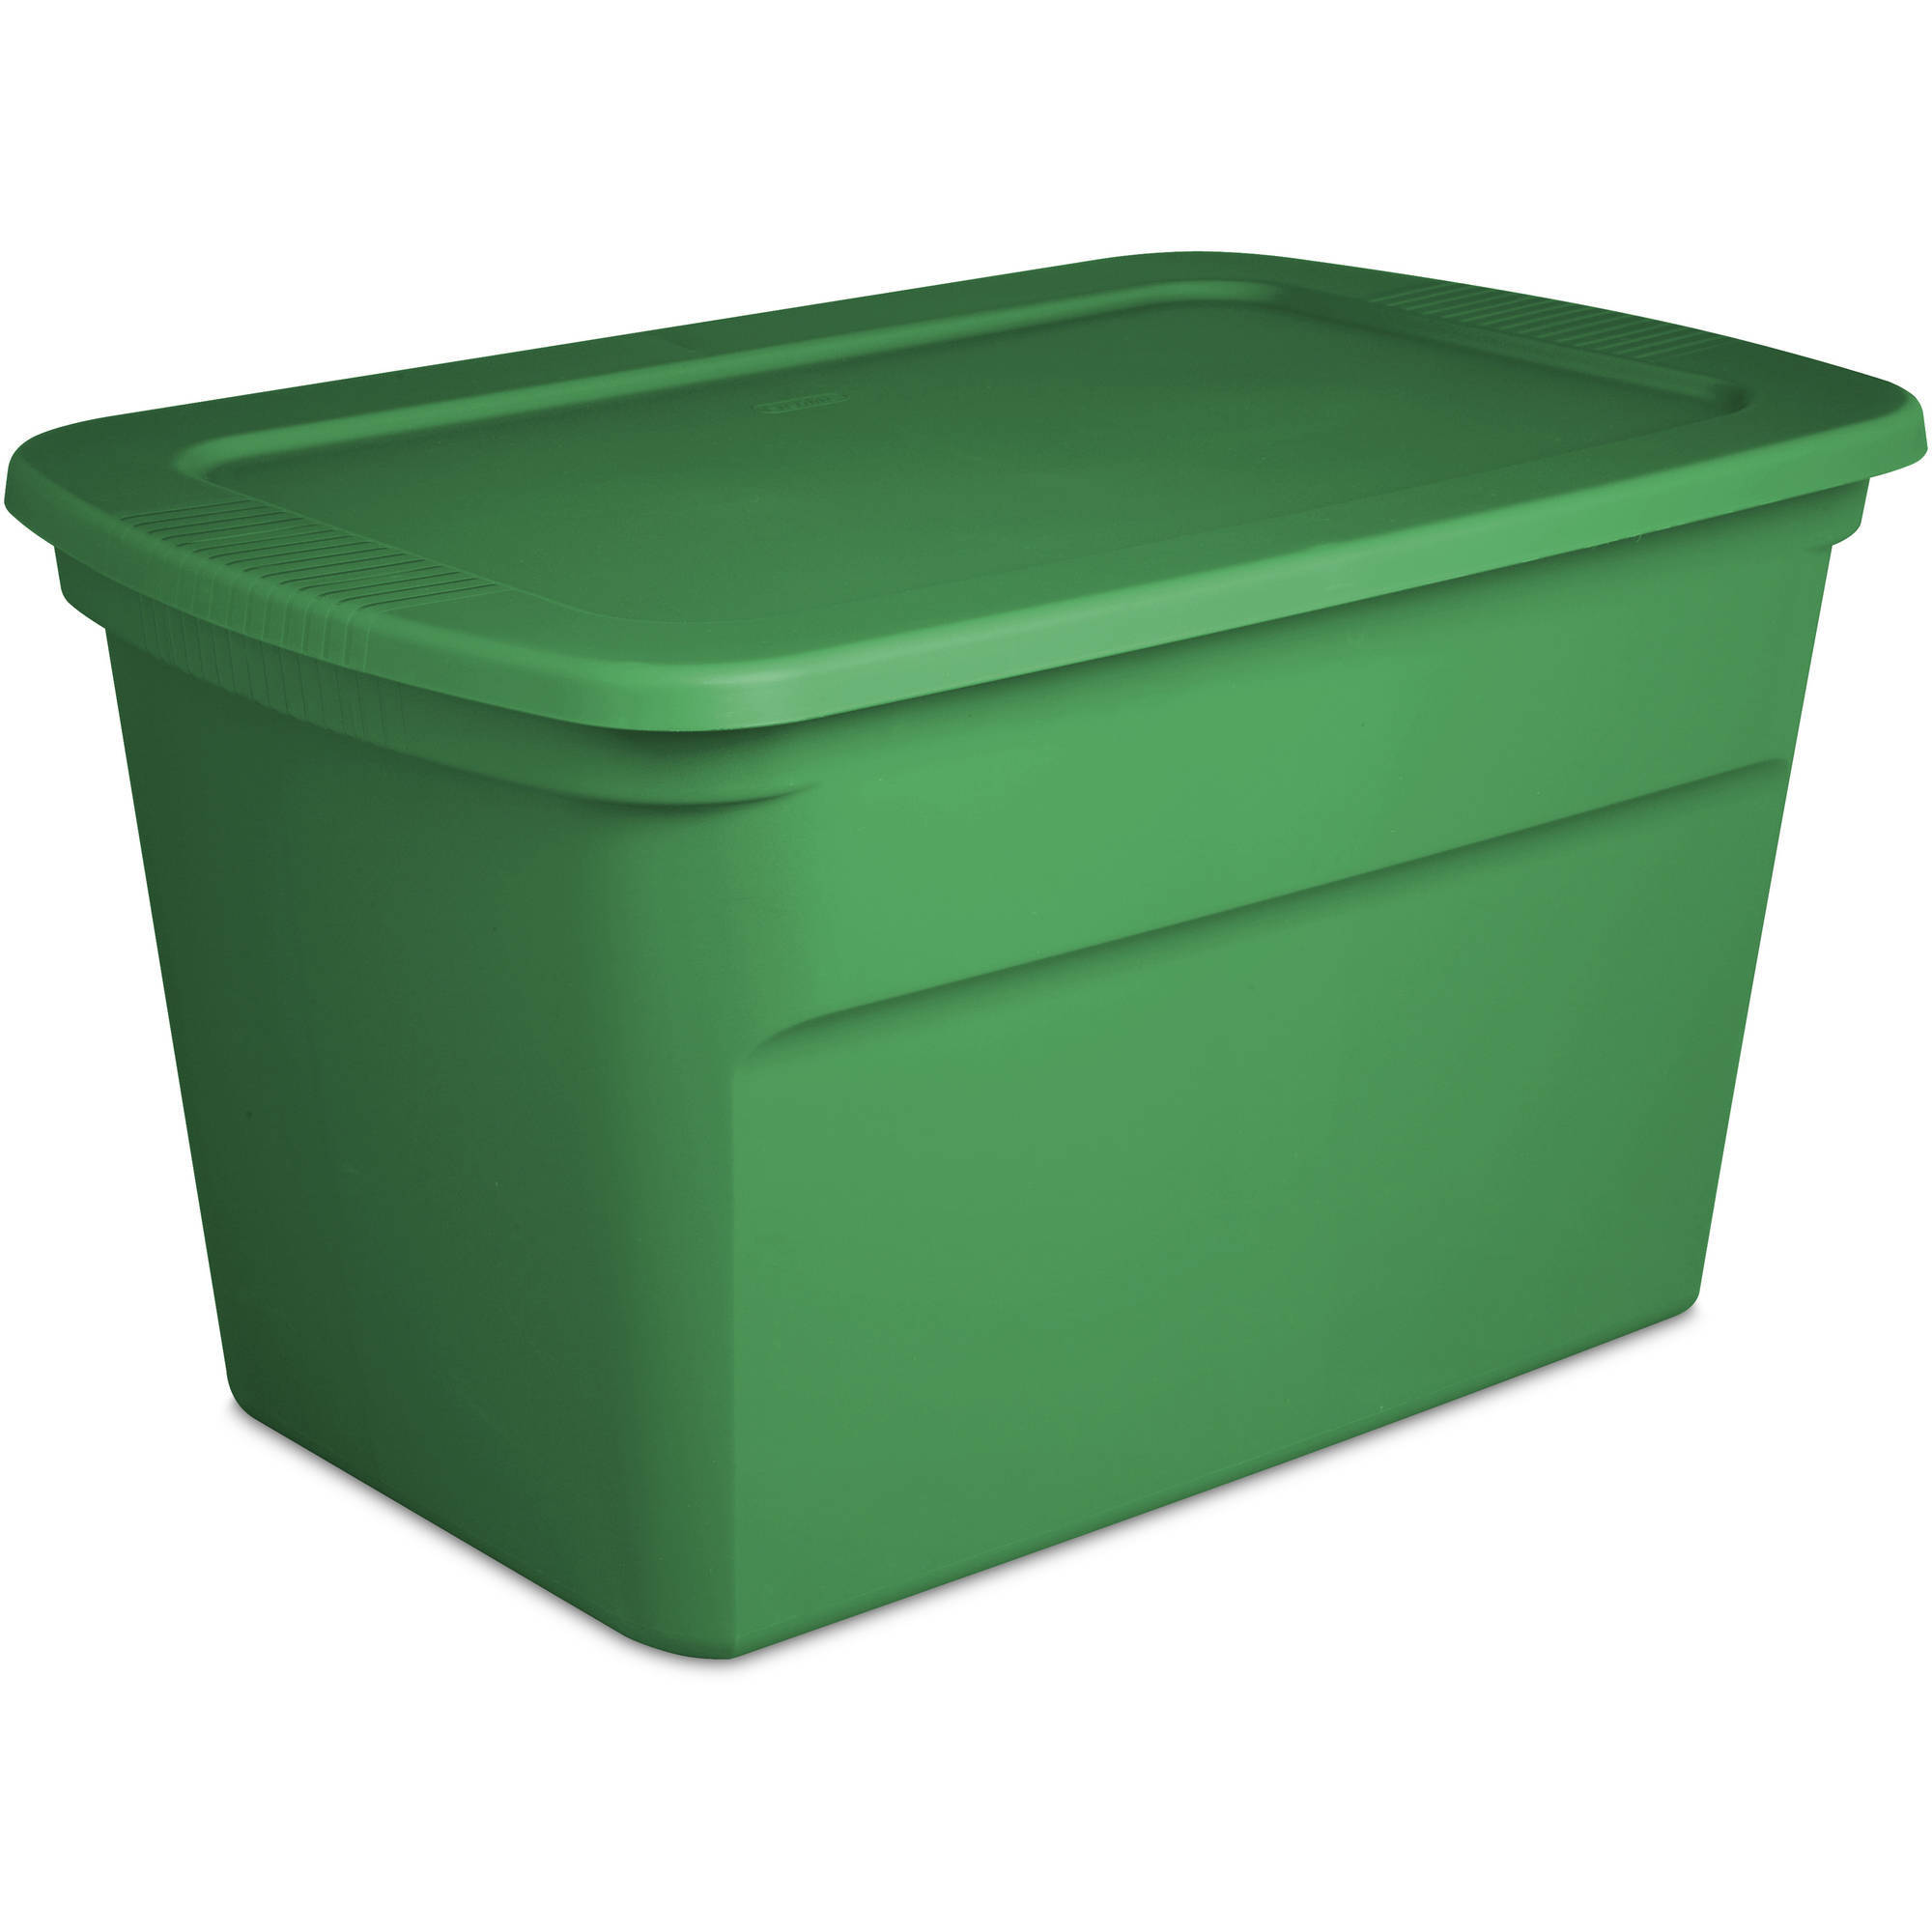 Sterilite 30-Gallon Tote Box, Elf Green